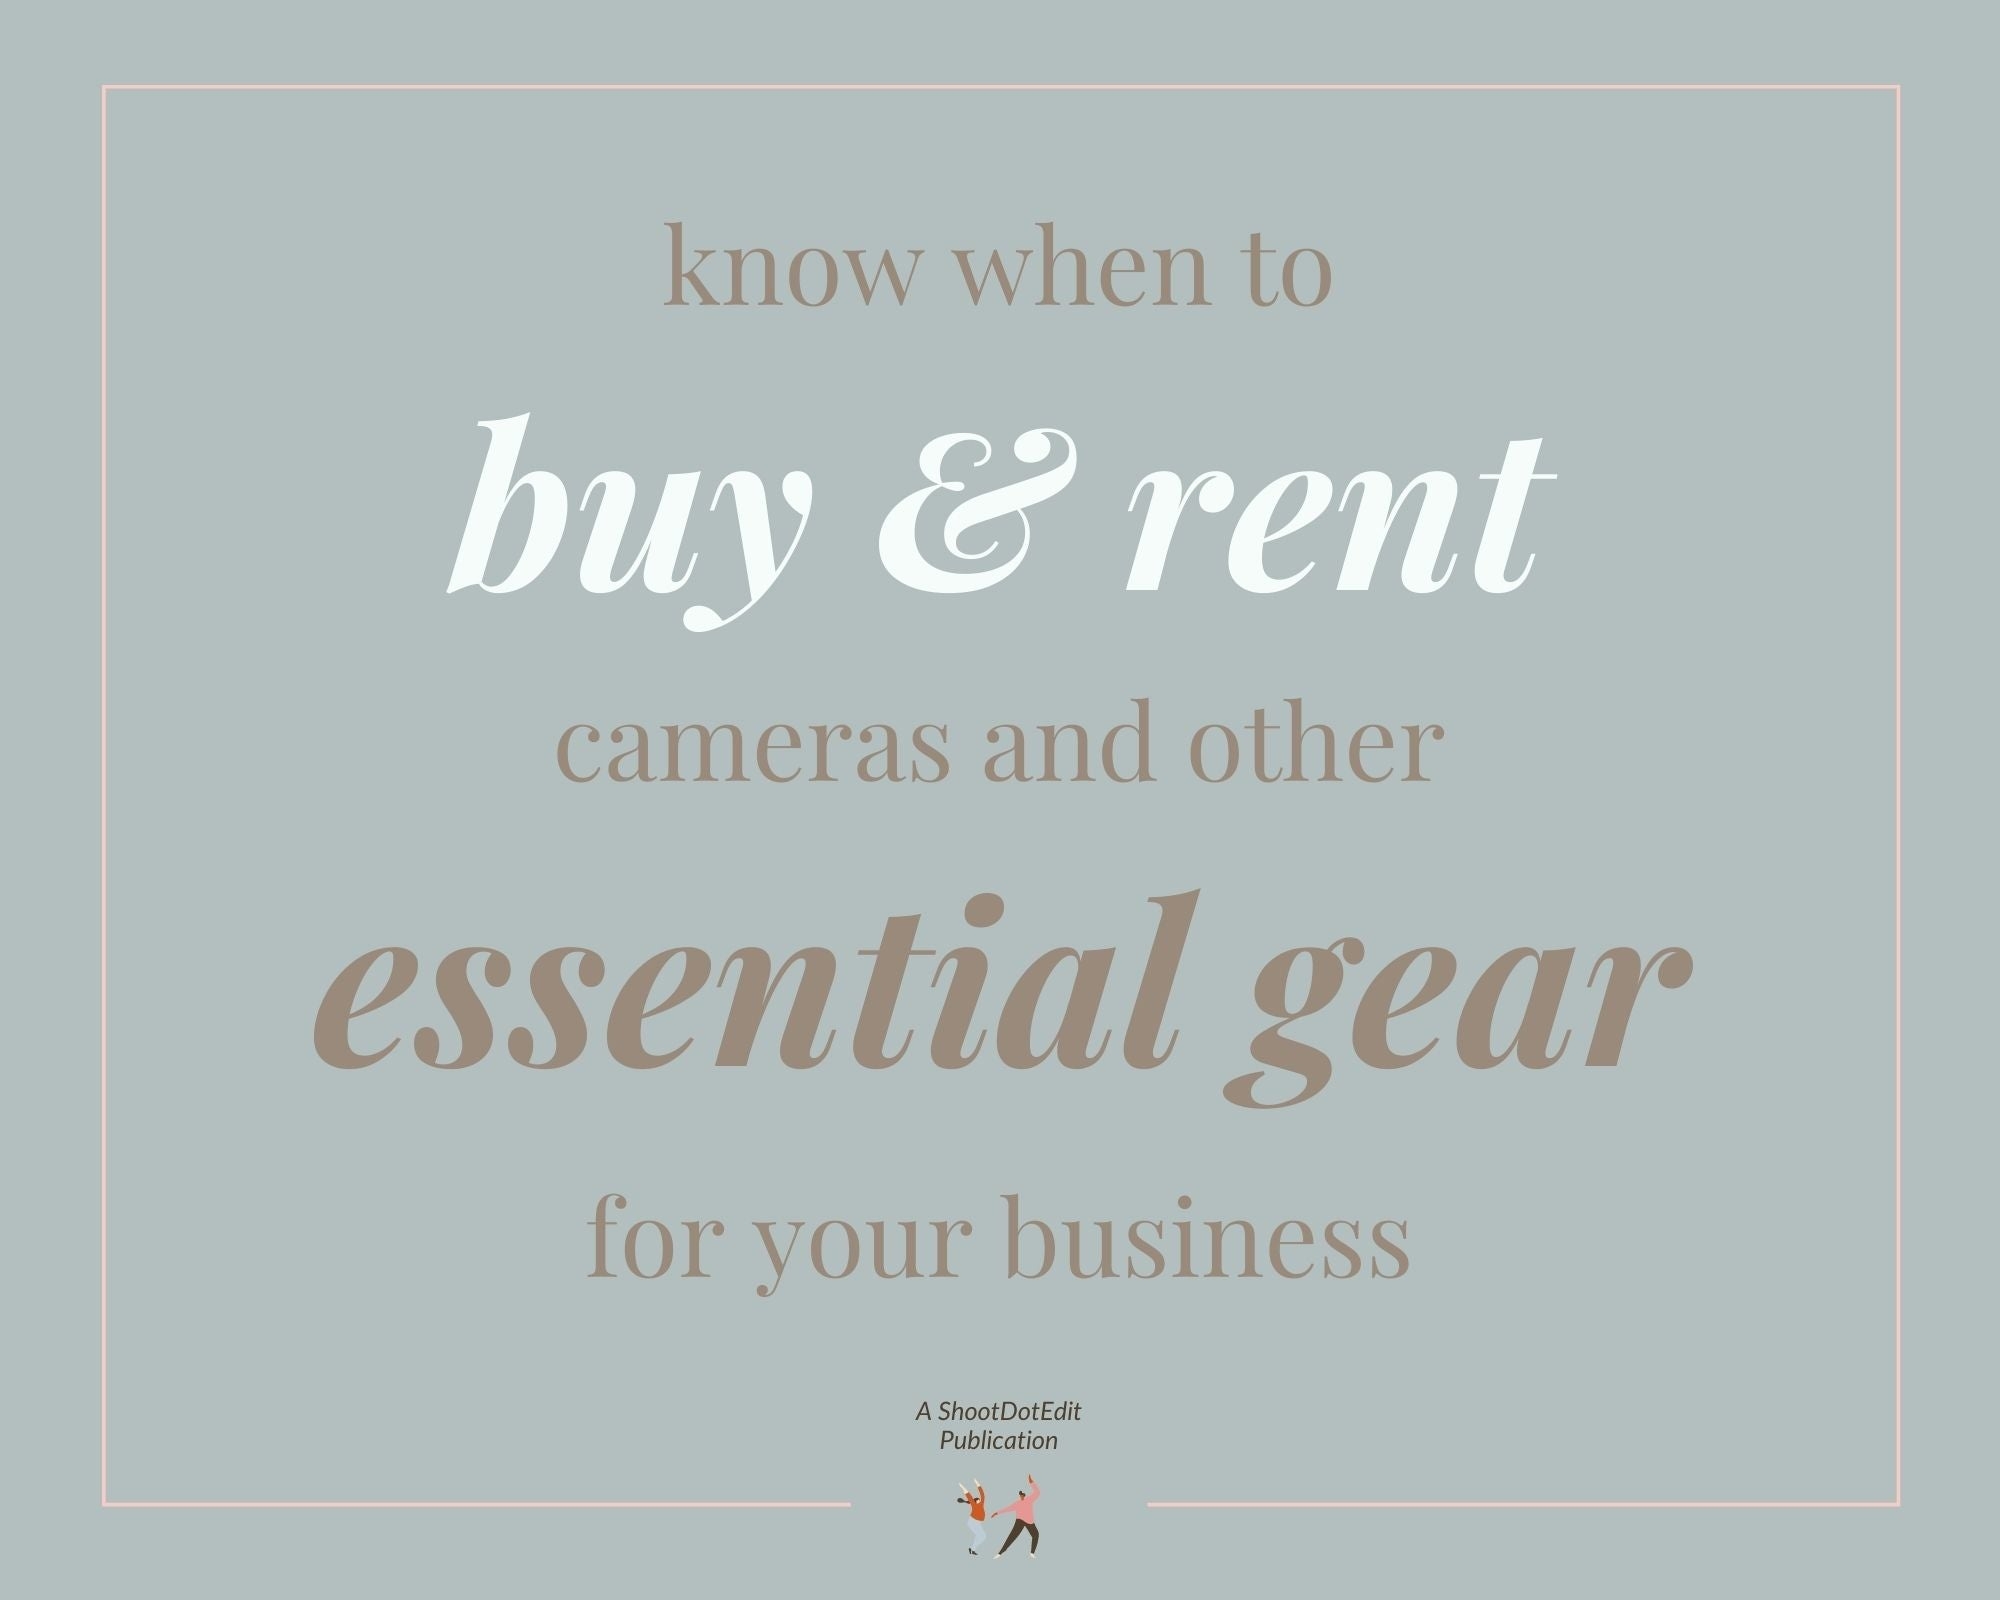 Infographic stating know when to buy and rent camera and other essential gear for your business